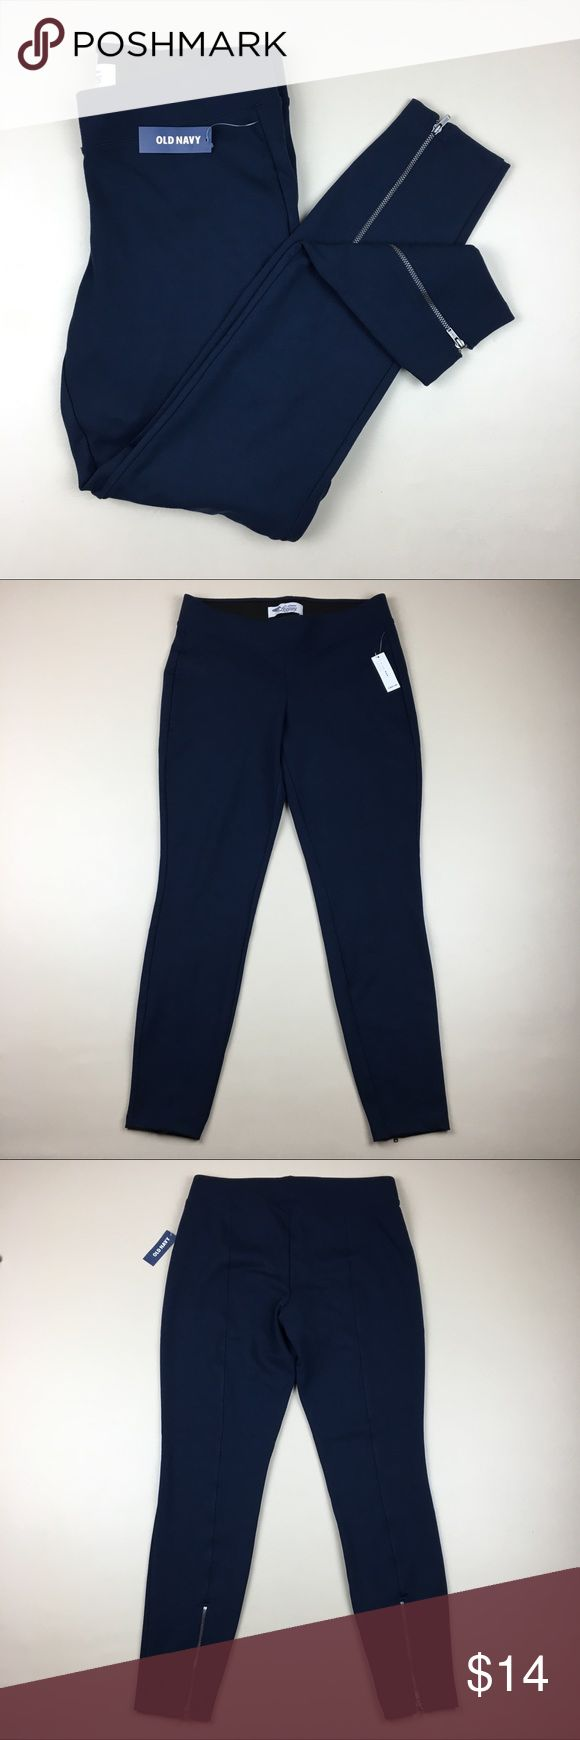 NWT Old Navy Super Skinny Ankle Zip Thick Leggings NWT Old Navy Super Skinny Ankle Zip Thick Leggings Navy Blue Size Medium Old Navy Pants Leggings